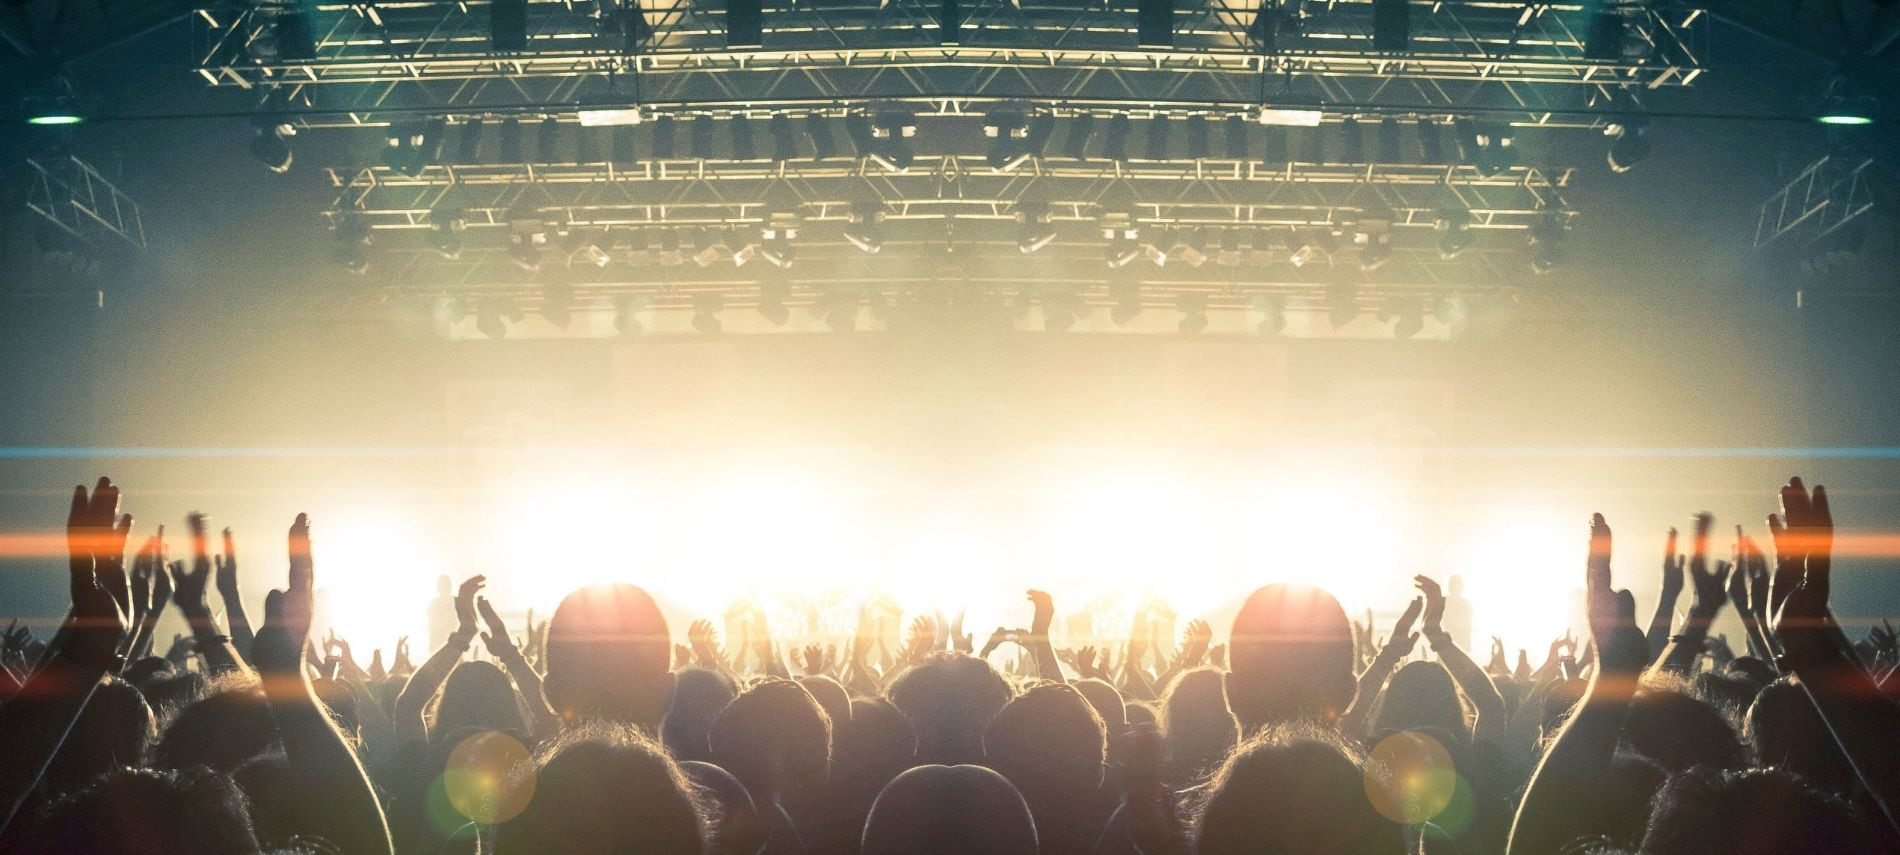 Silhouette of audience watching live concert with arms in the air